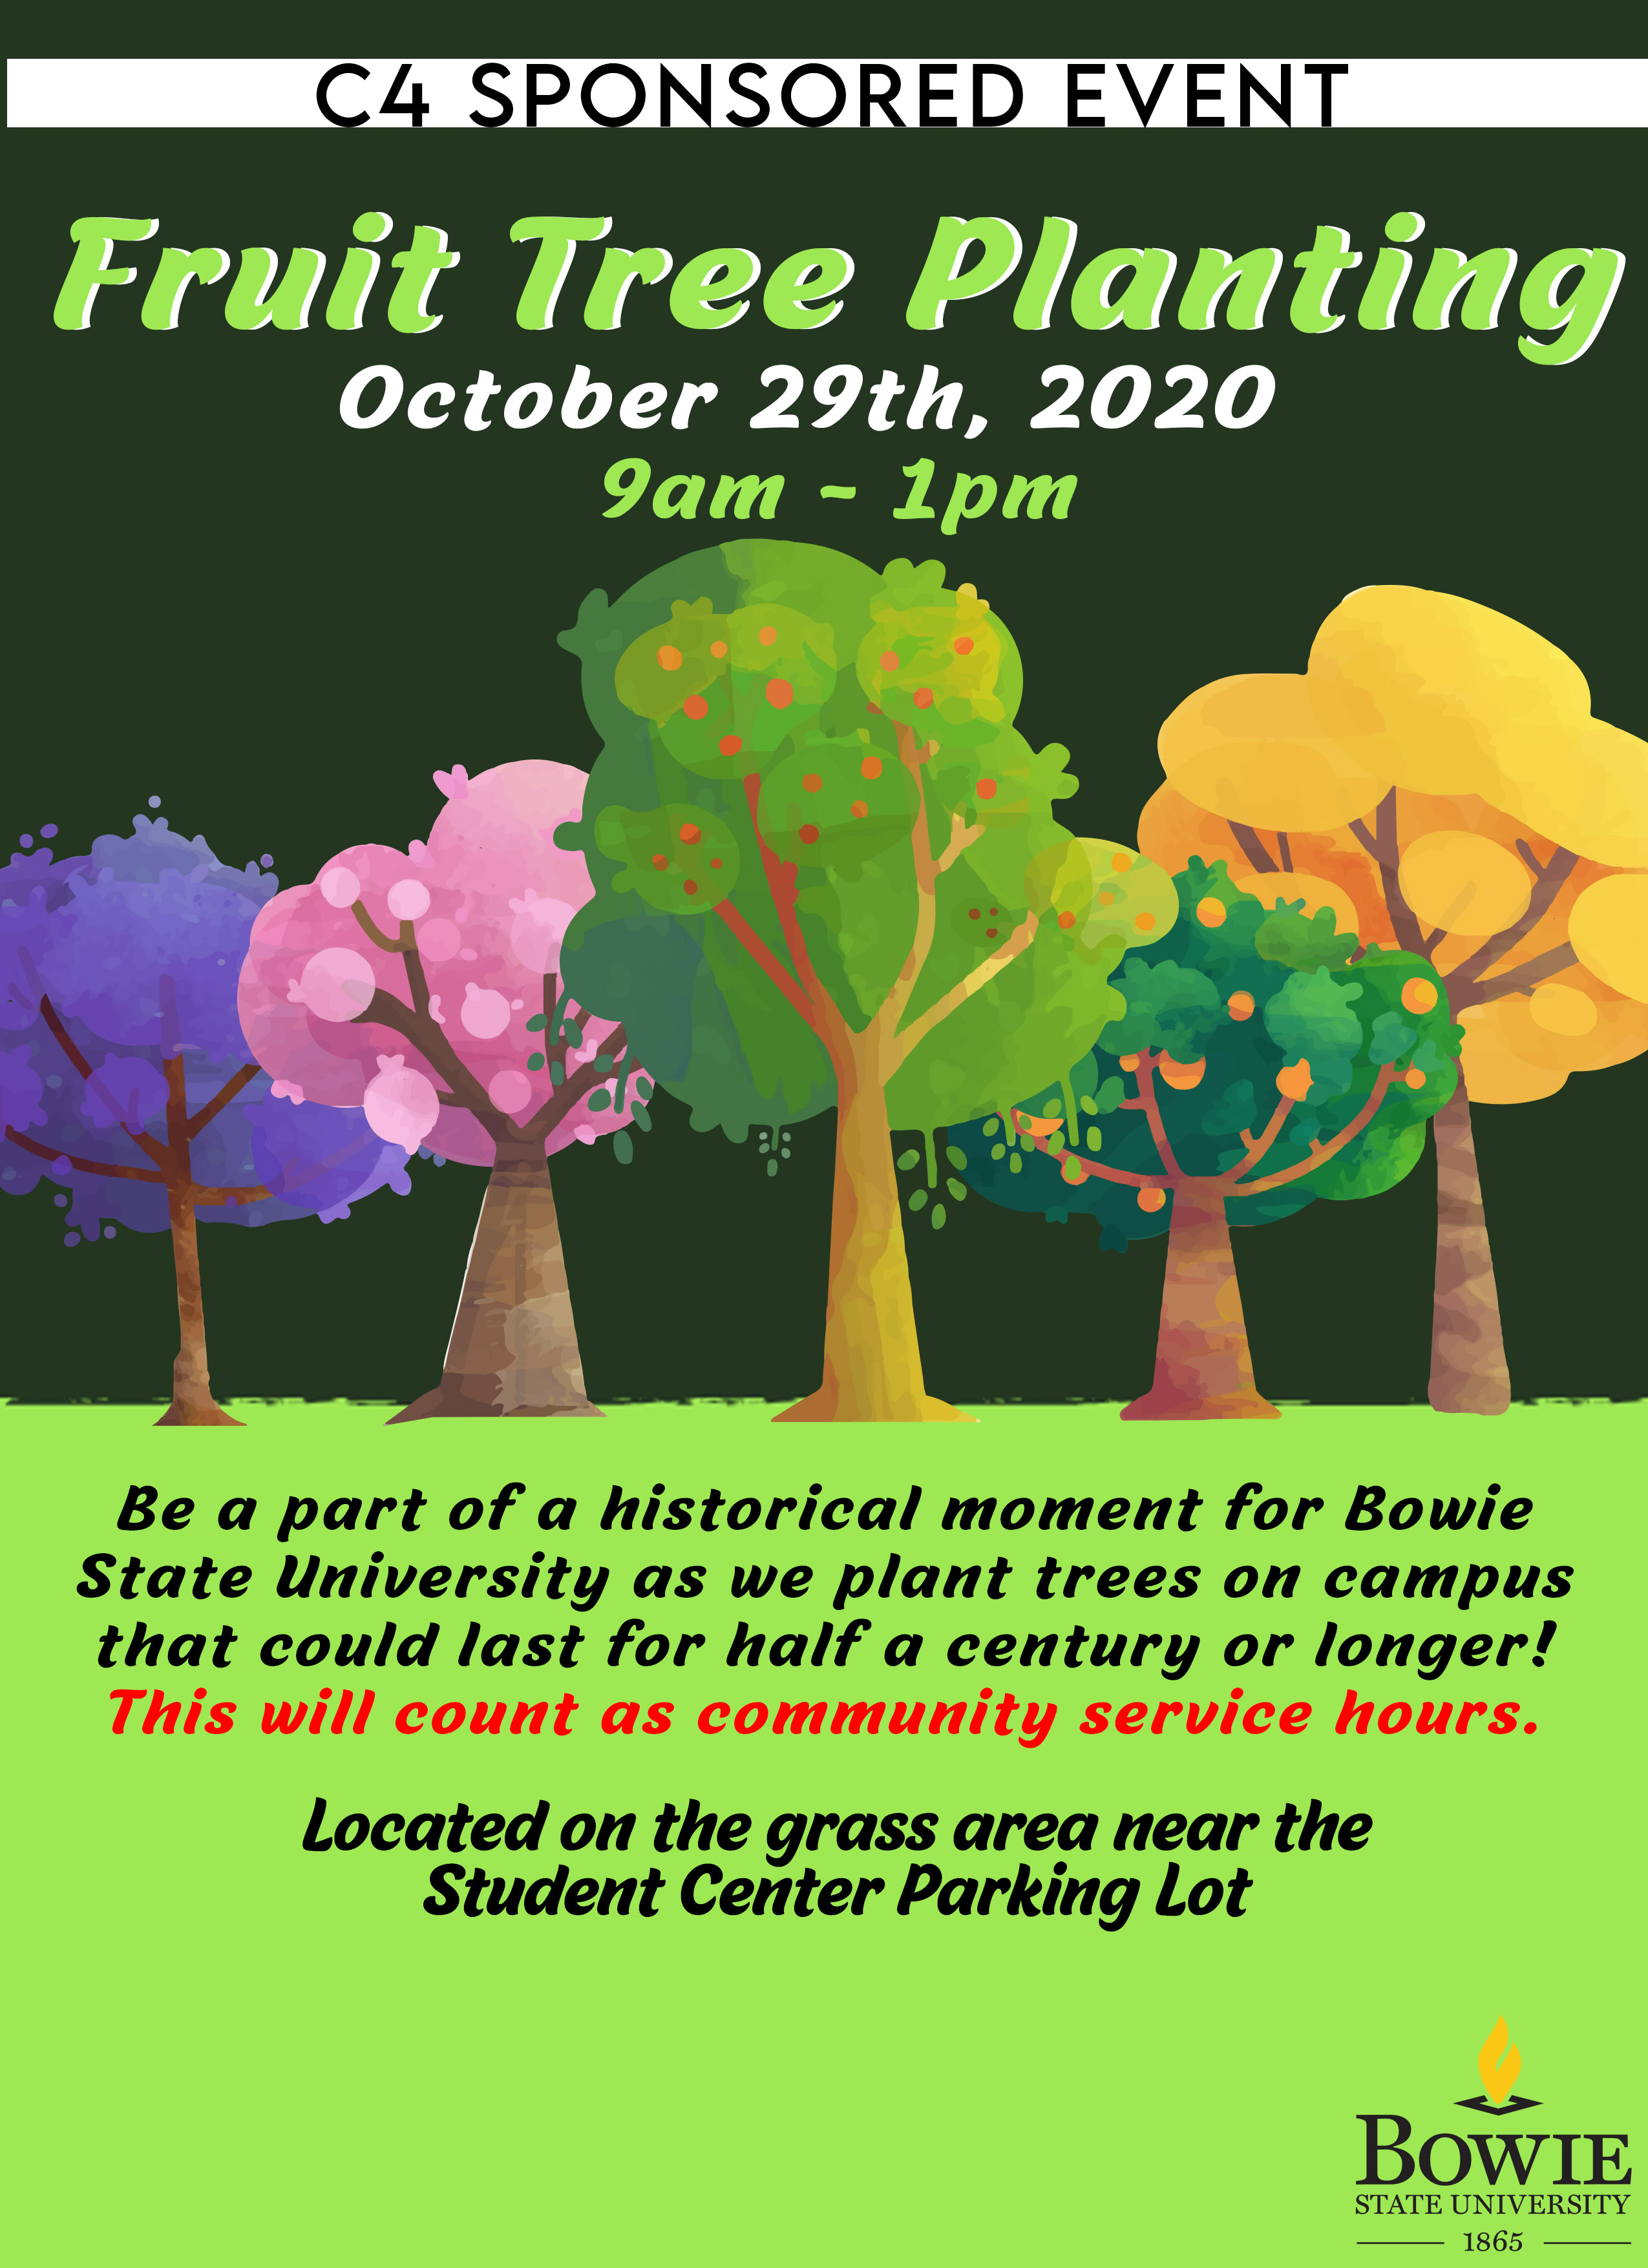 fruit tree planting event flyer